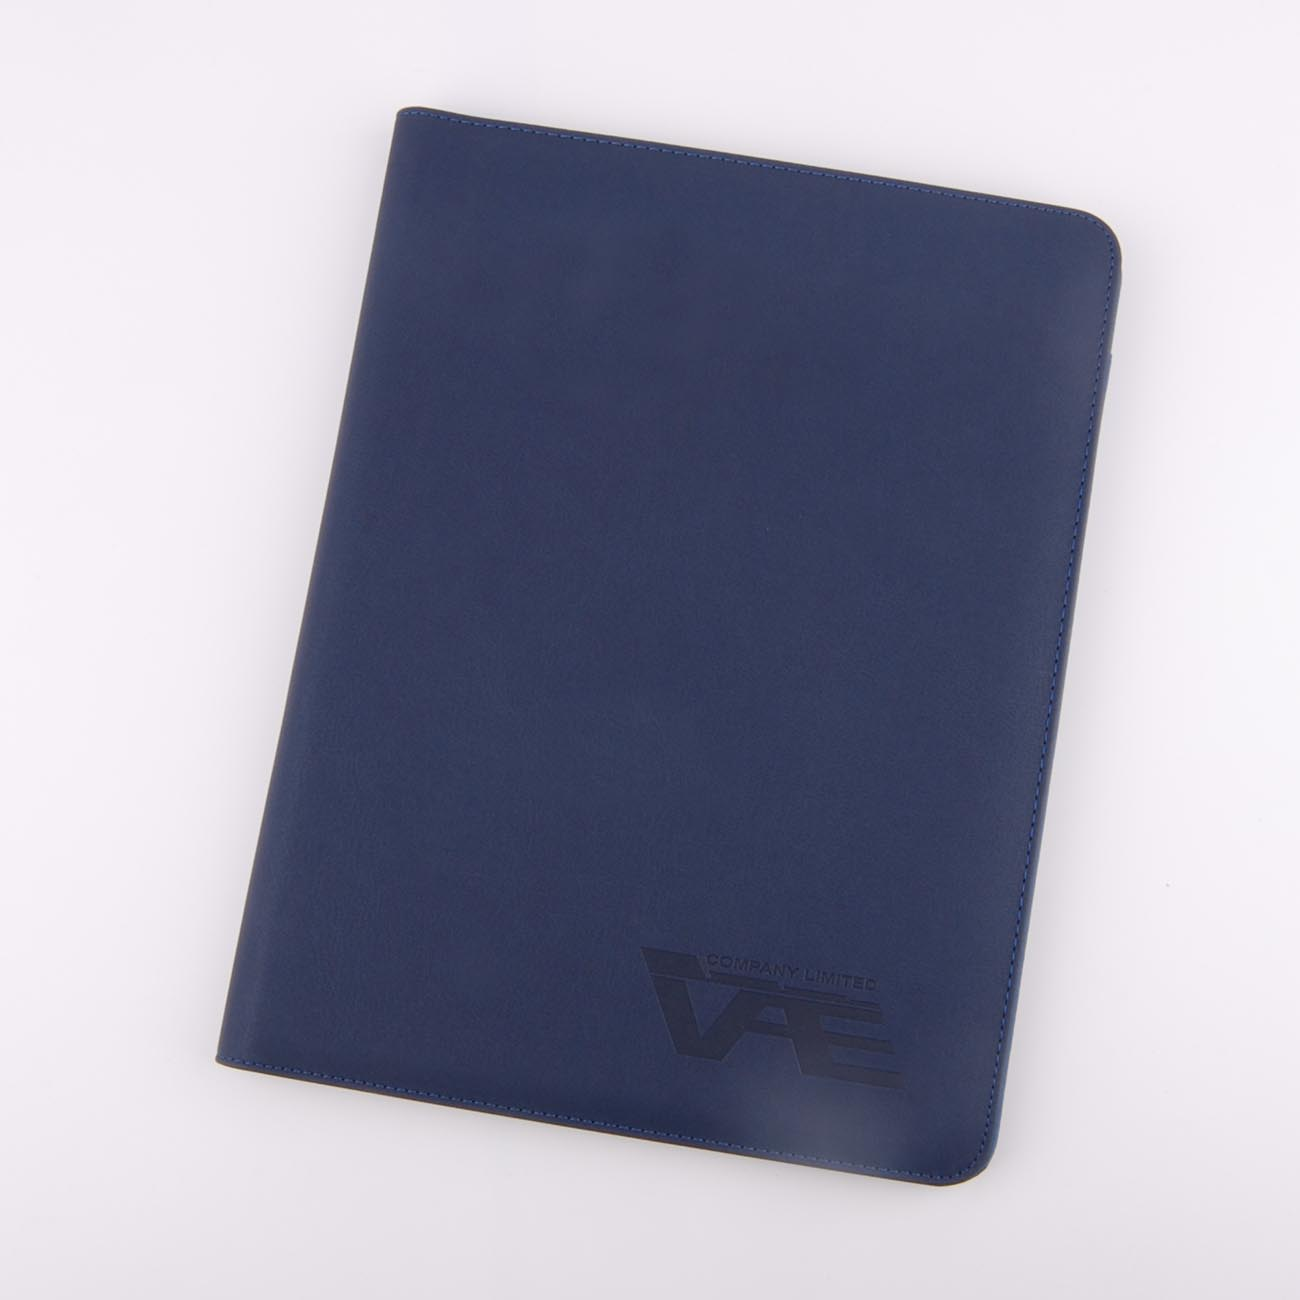 http://www.best-notebook.com/data/images/product/20170904113959_552.jpg